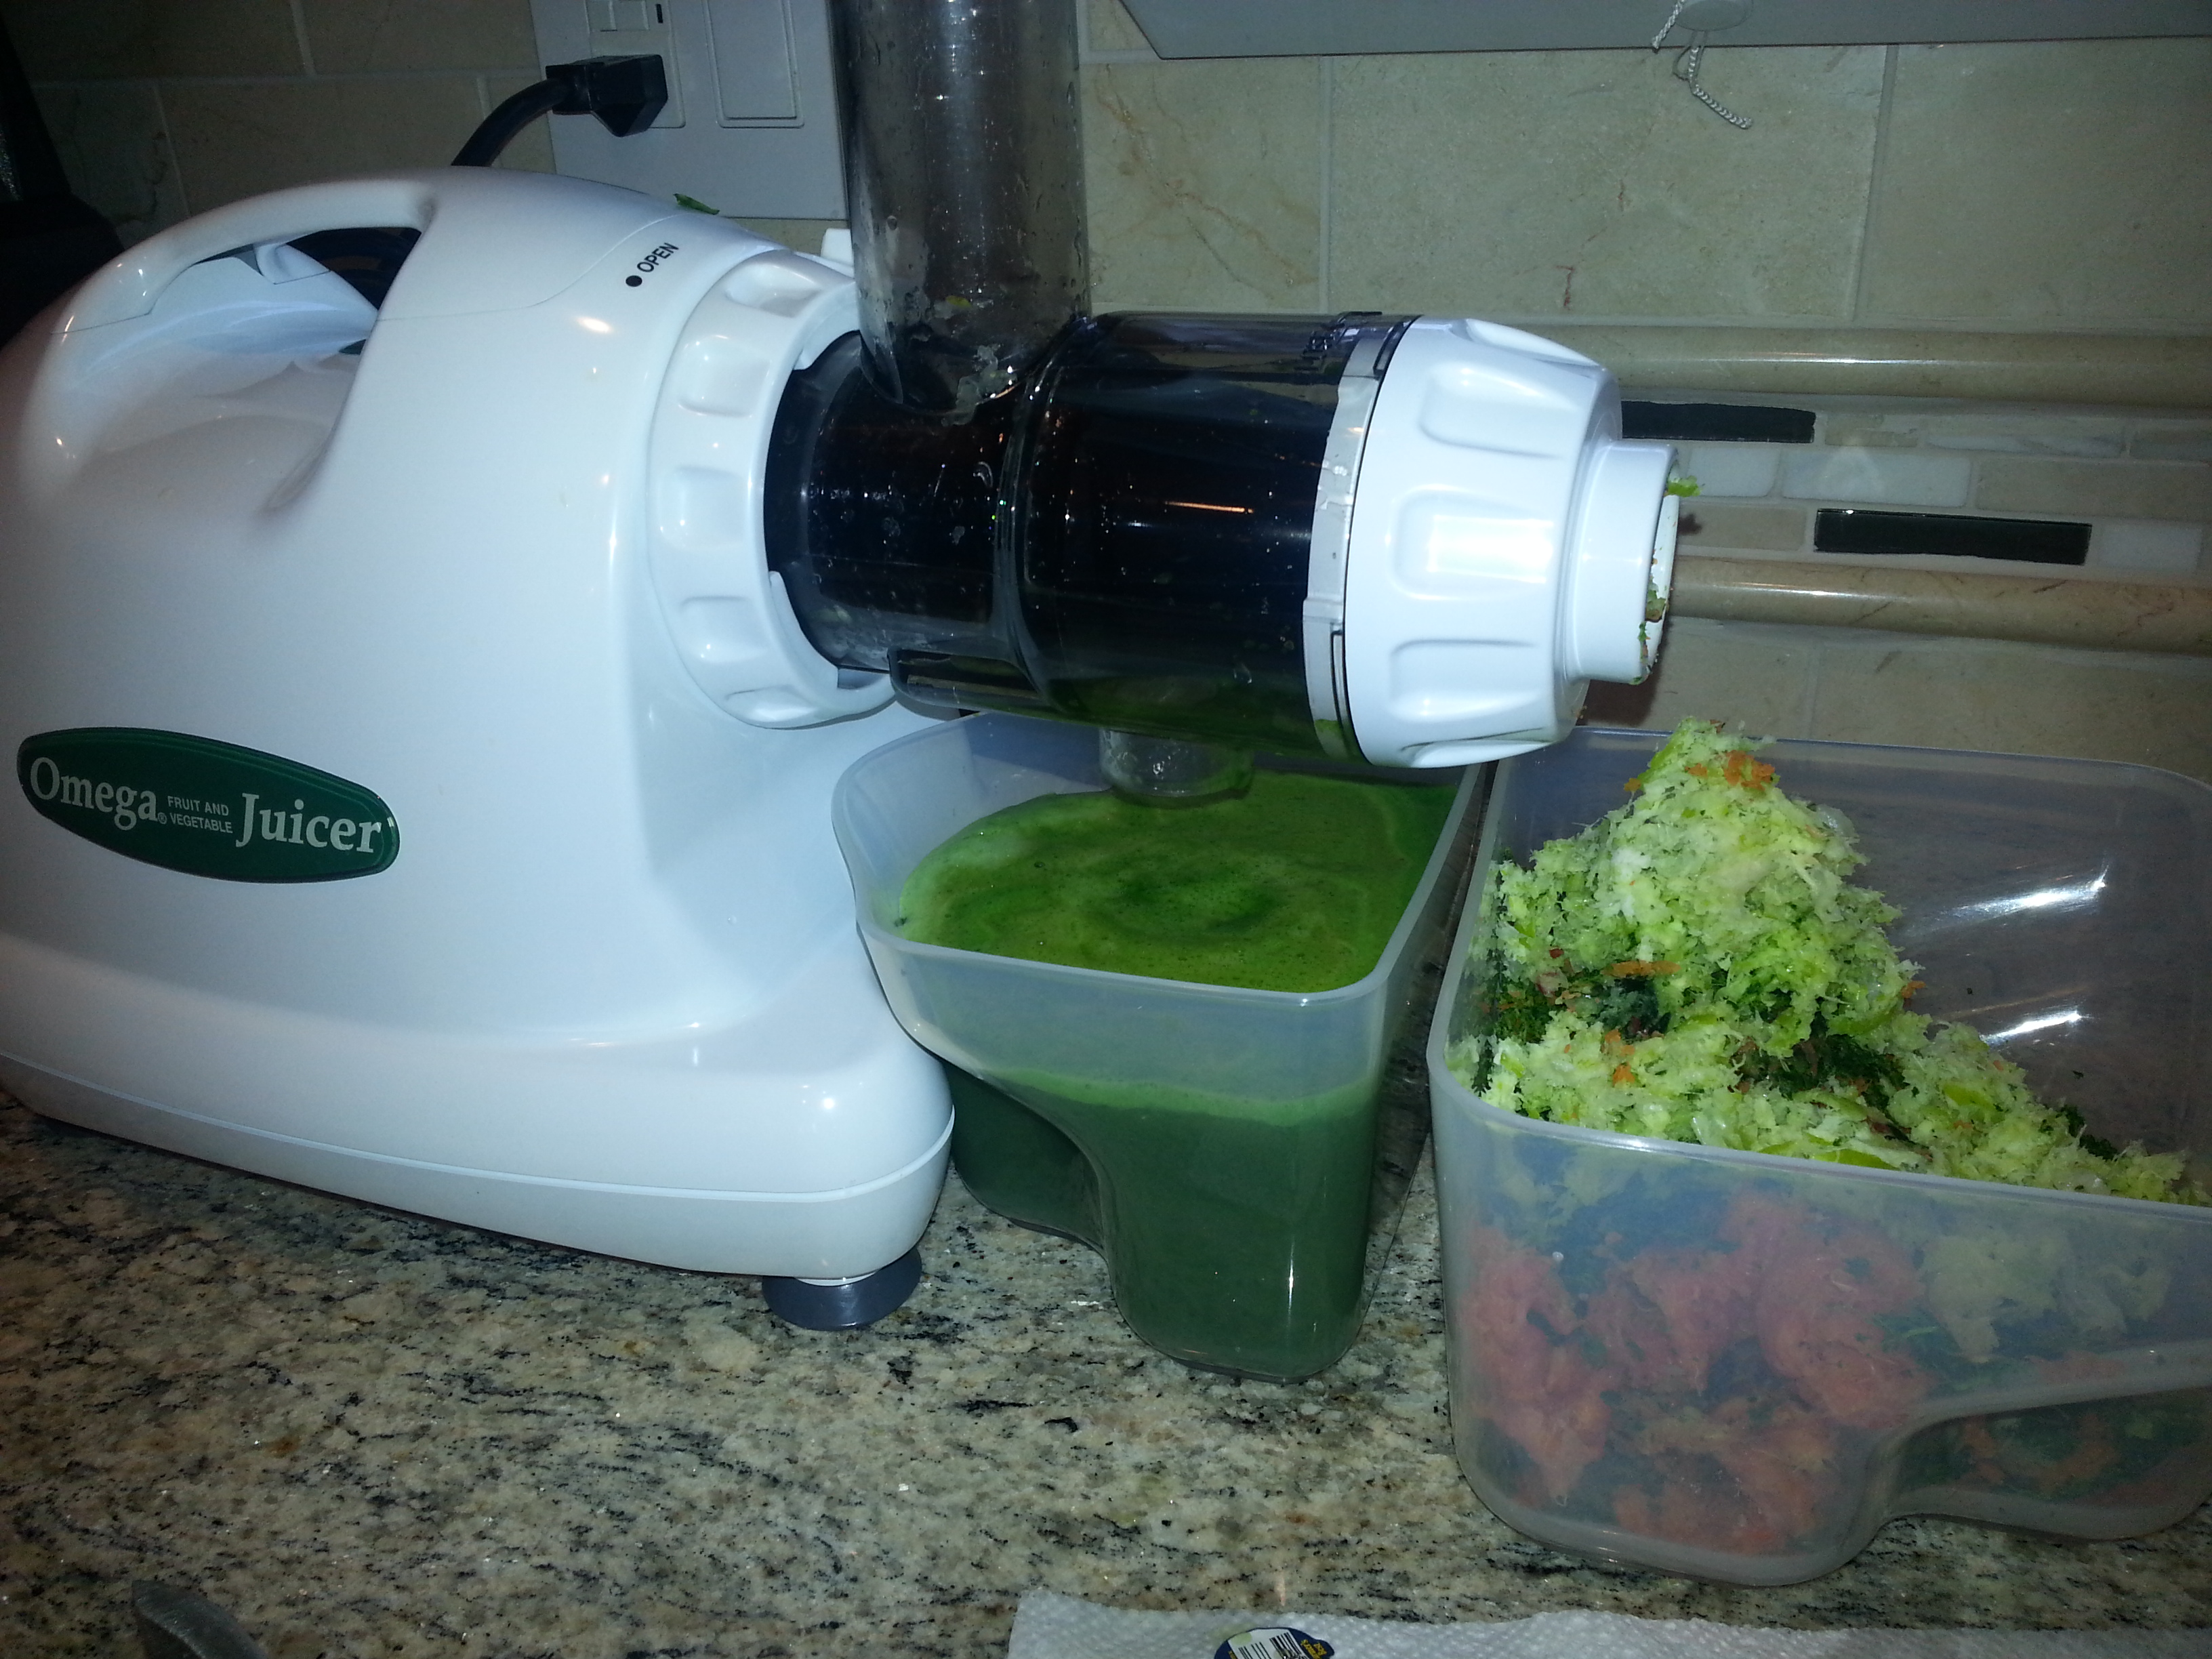 Omega Vert Vrt350hd Slow Juicer Review : Omega Juicer. The. Omega For Leafy Greens. Best Omega Masticating Juicers. Omega Nc900 Hdc Parts ...